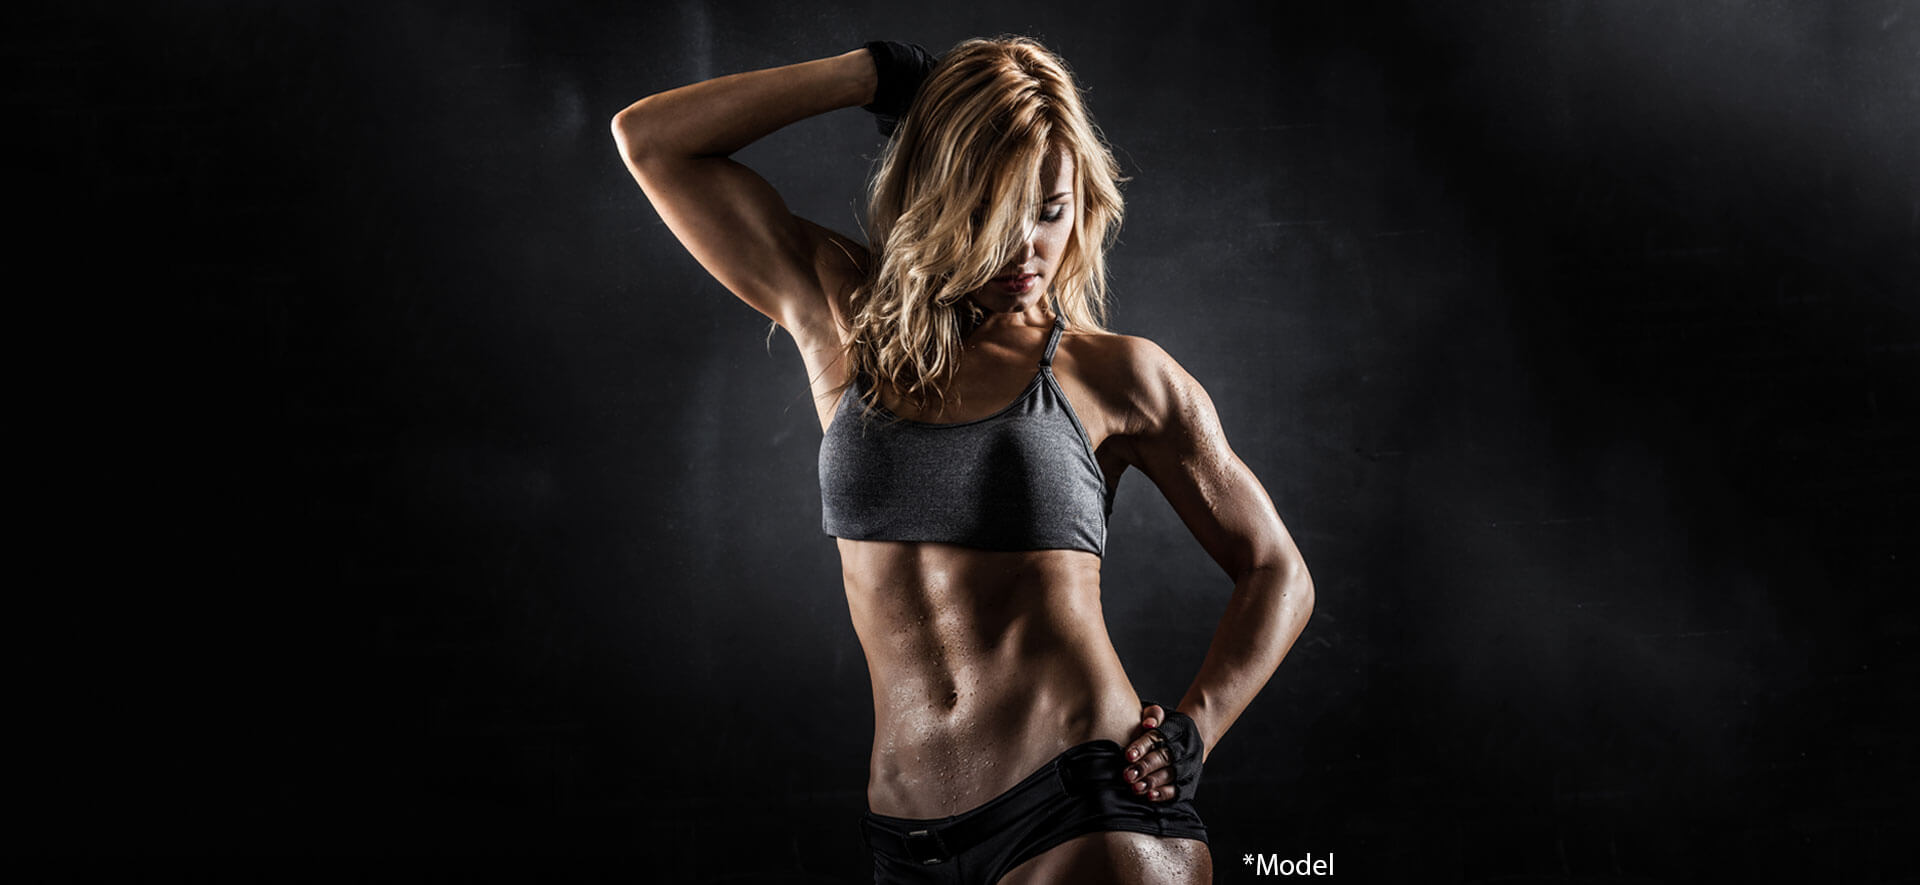 Fitness model in dark background